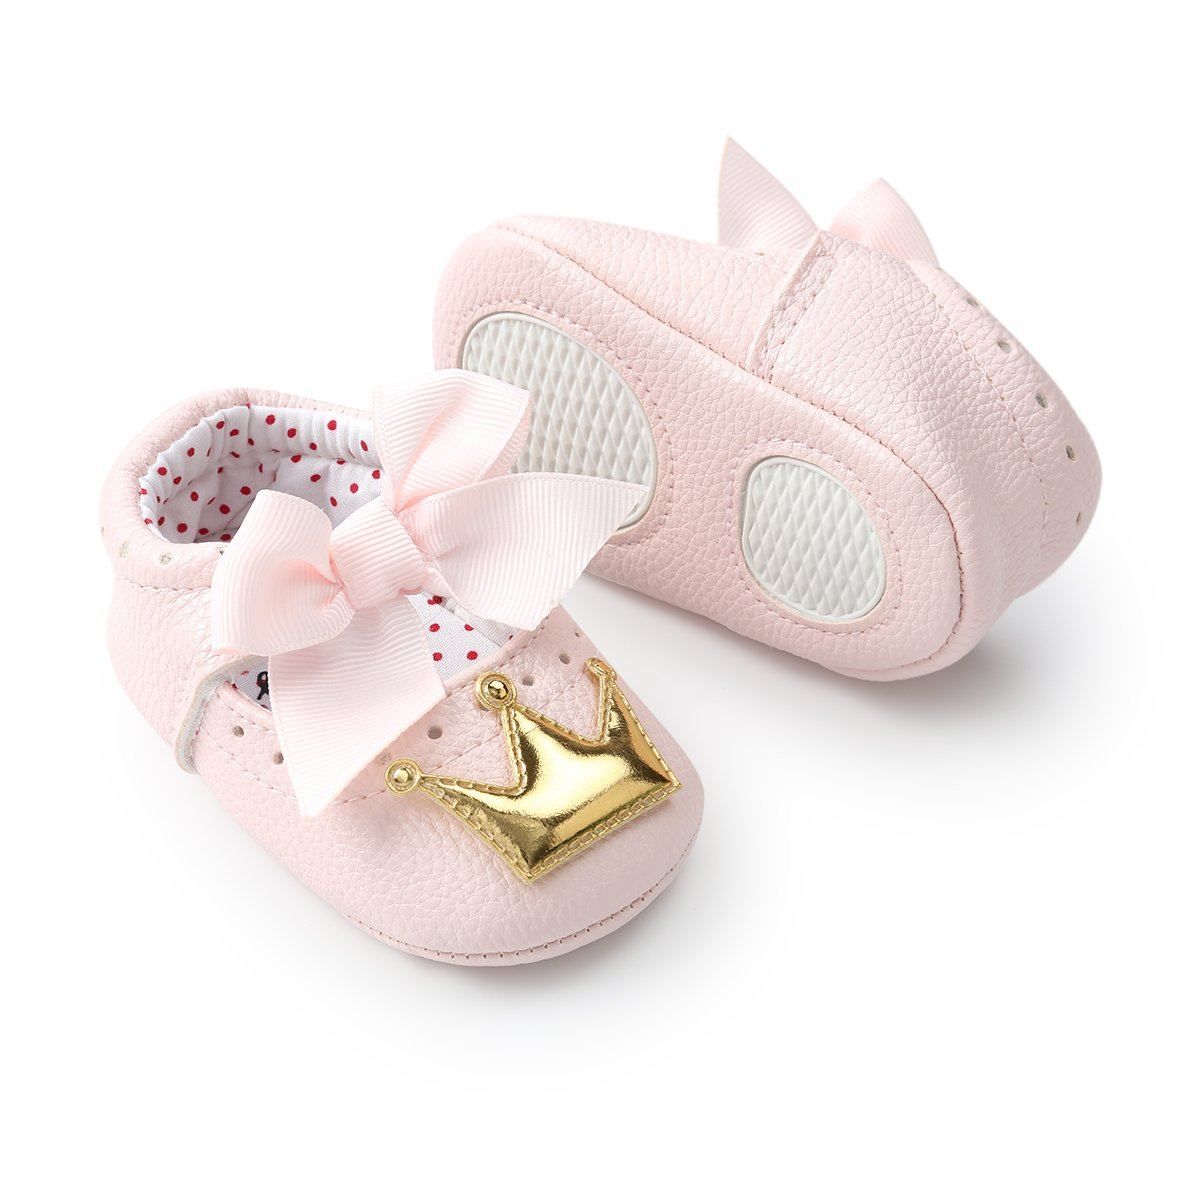 HONGTEYA Baby Girls Mary Jane Princess Dress Flat Shoe PU Leather Infant Toddler Moccasins Sandals